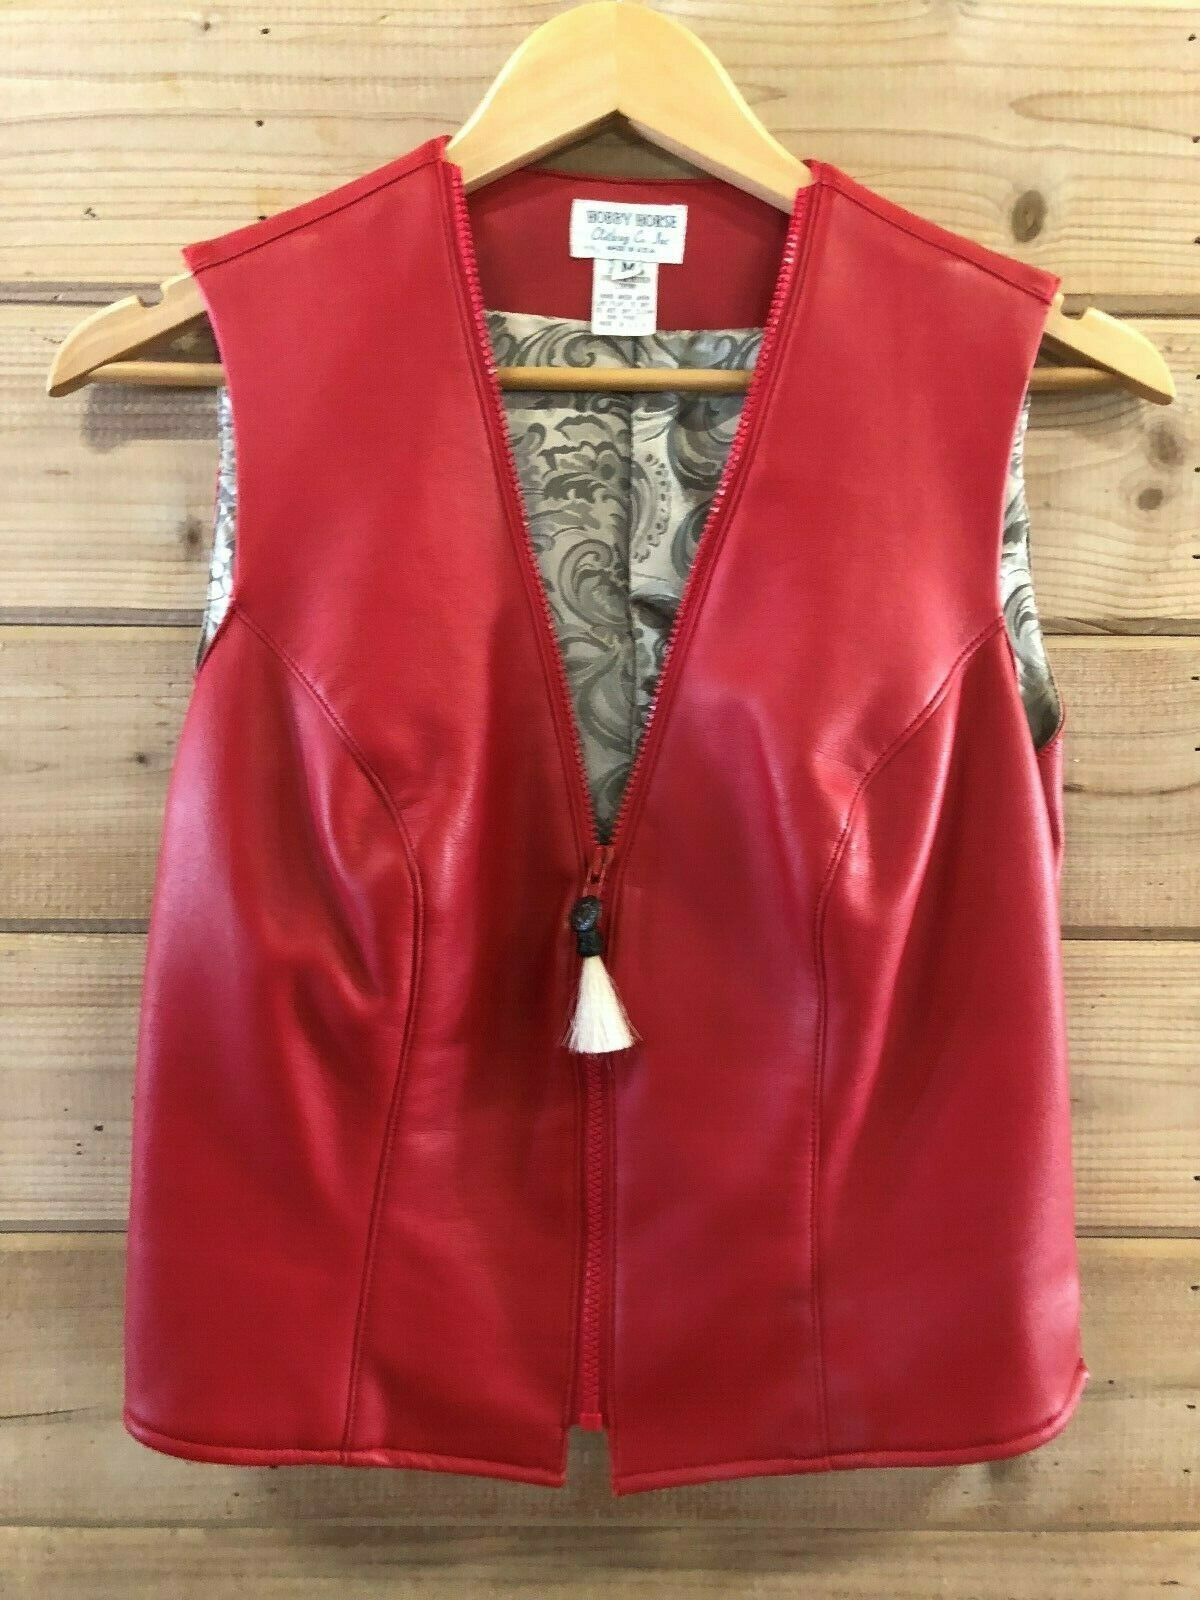 Hobby Horse  Pleather Western Show Vest Red with  Lining  best offer